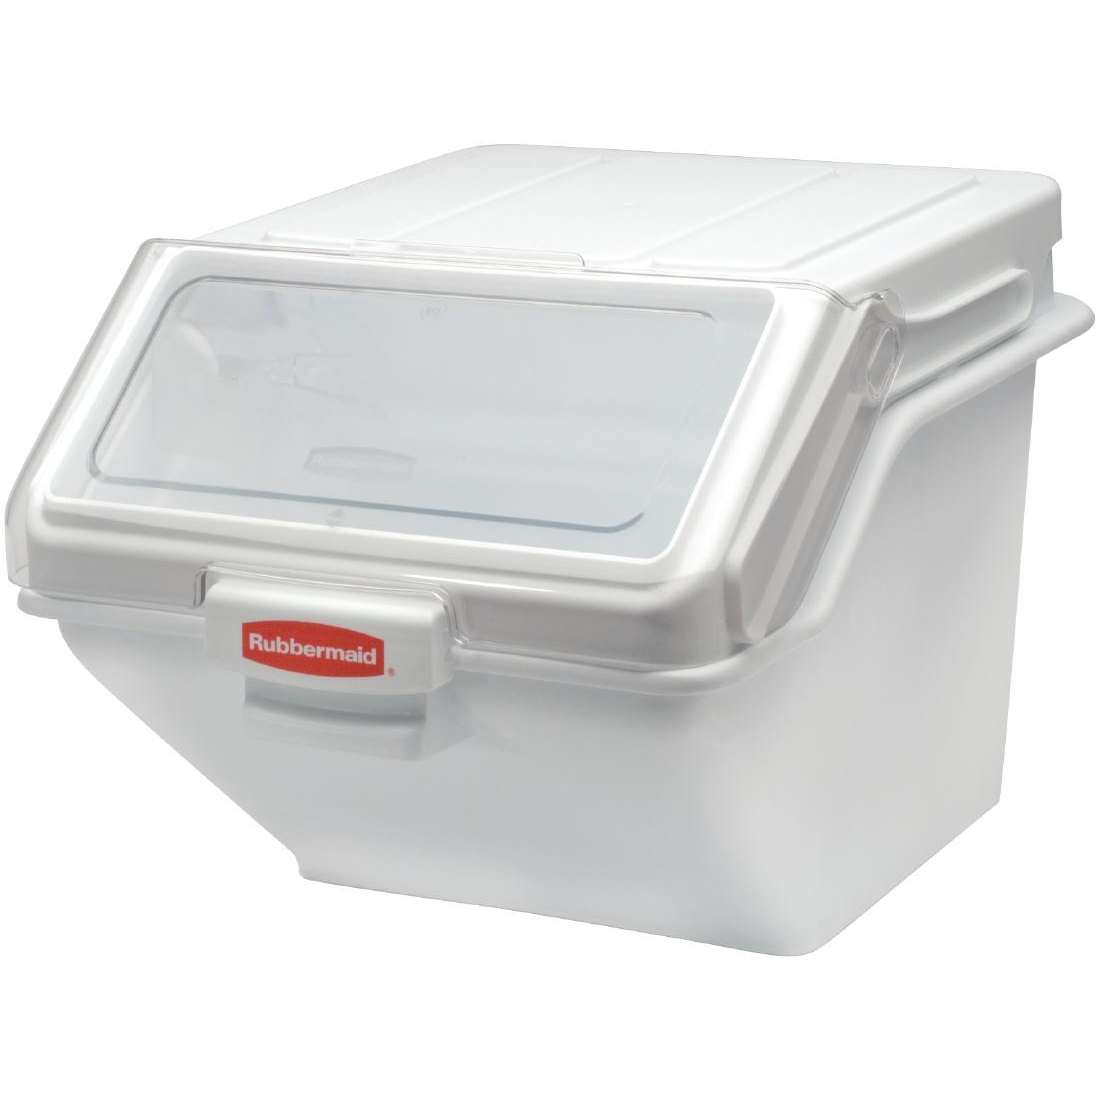 Bac à ingrédients empilable Rubbermaid 23,5L